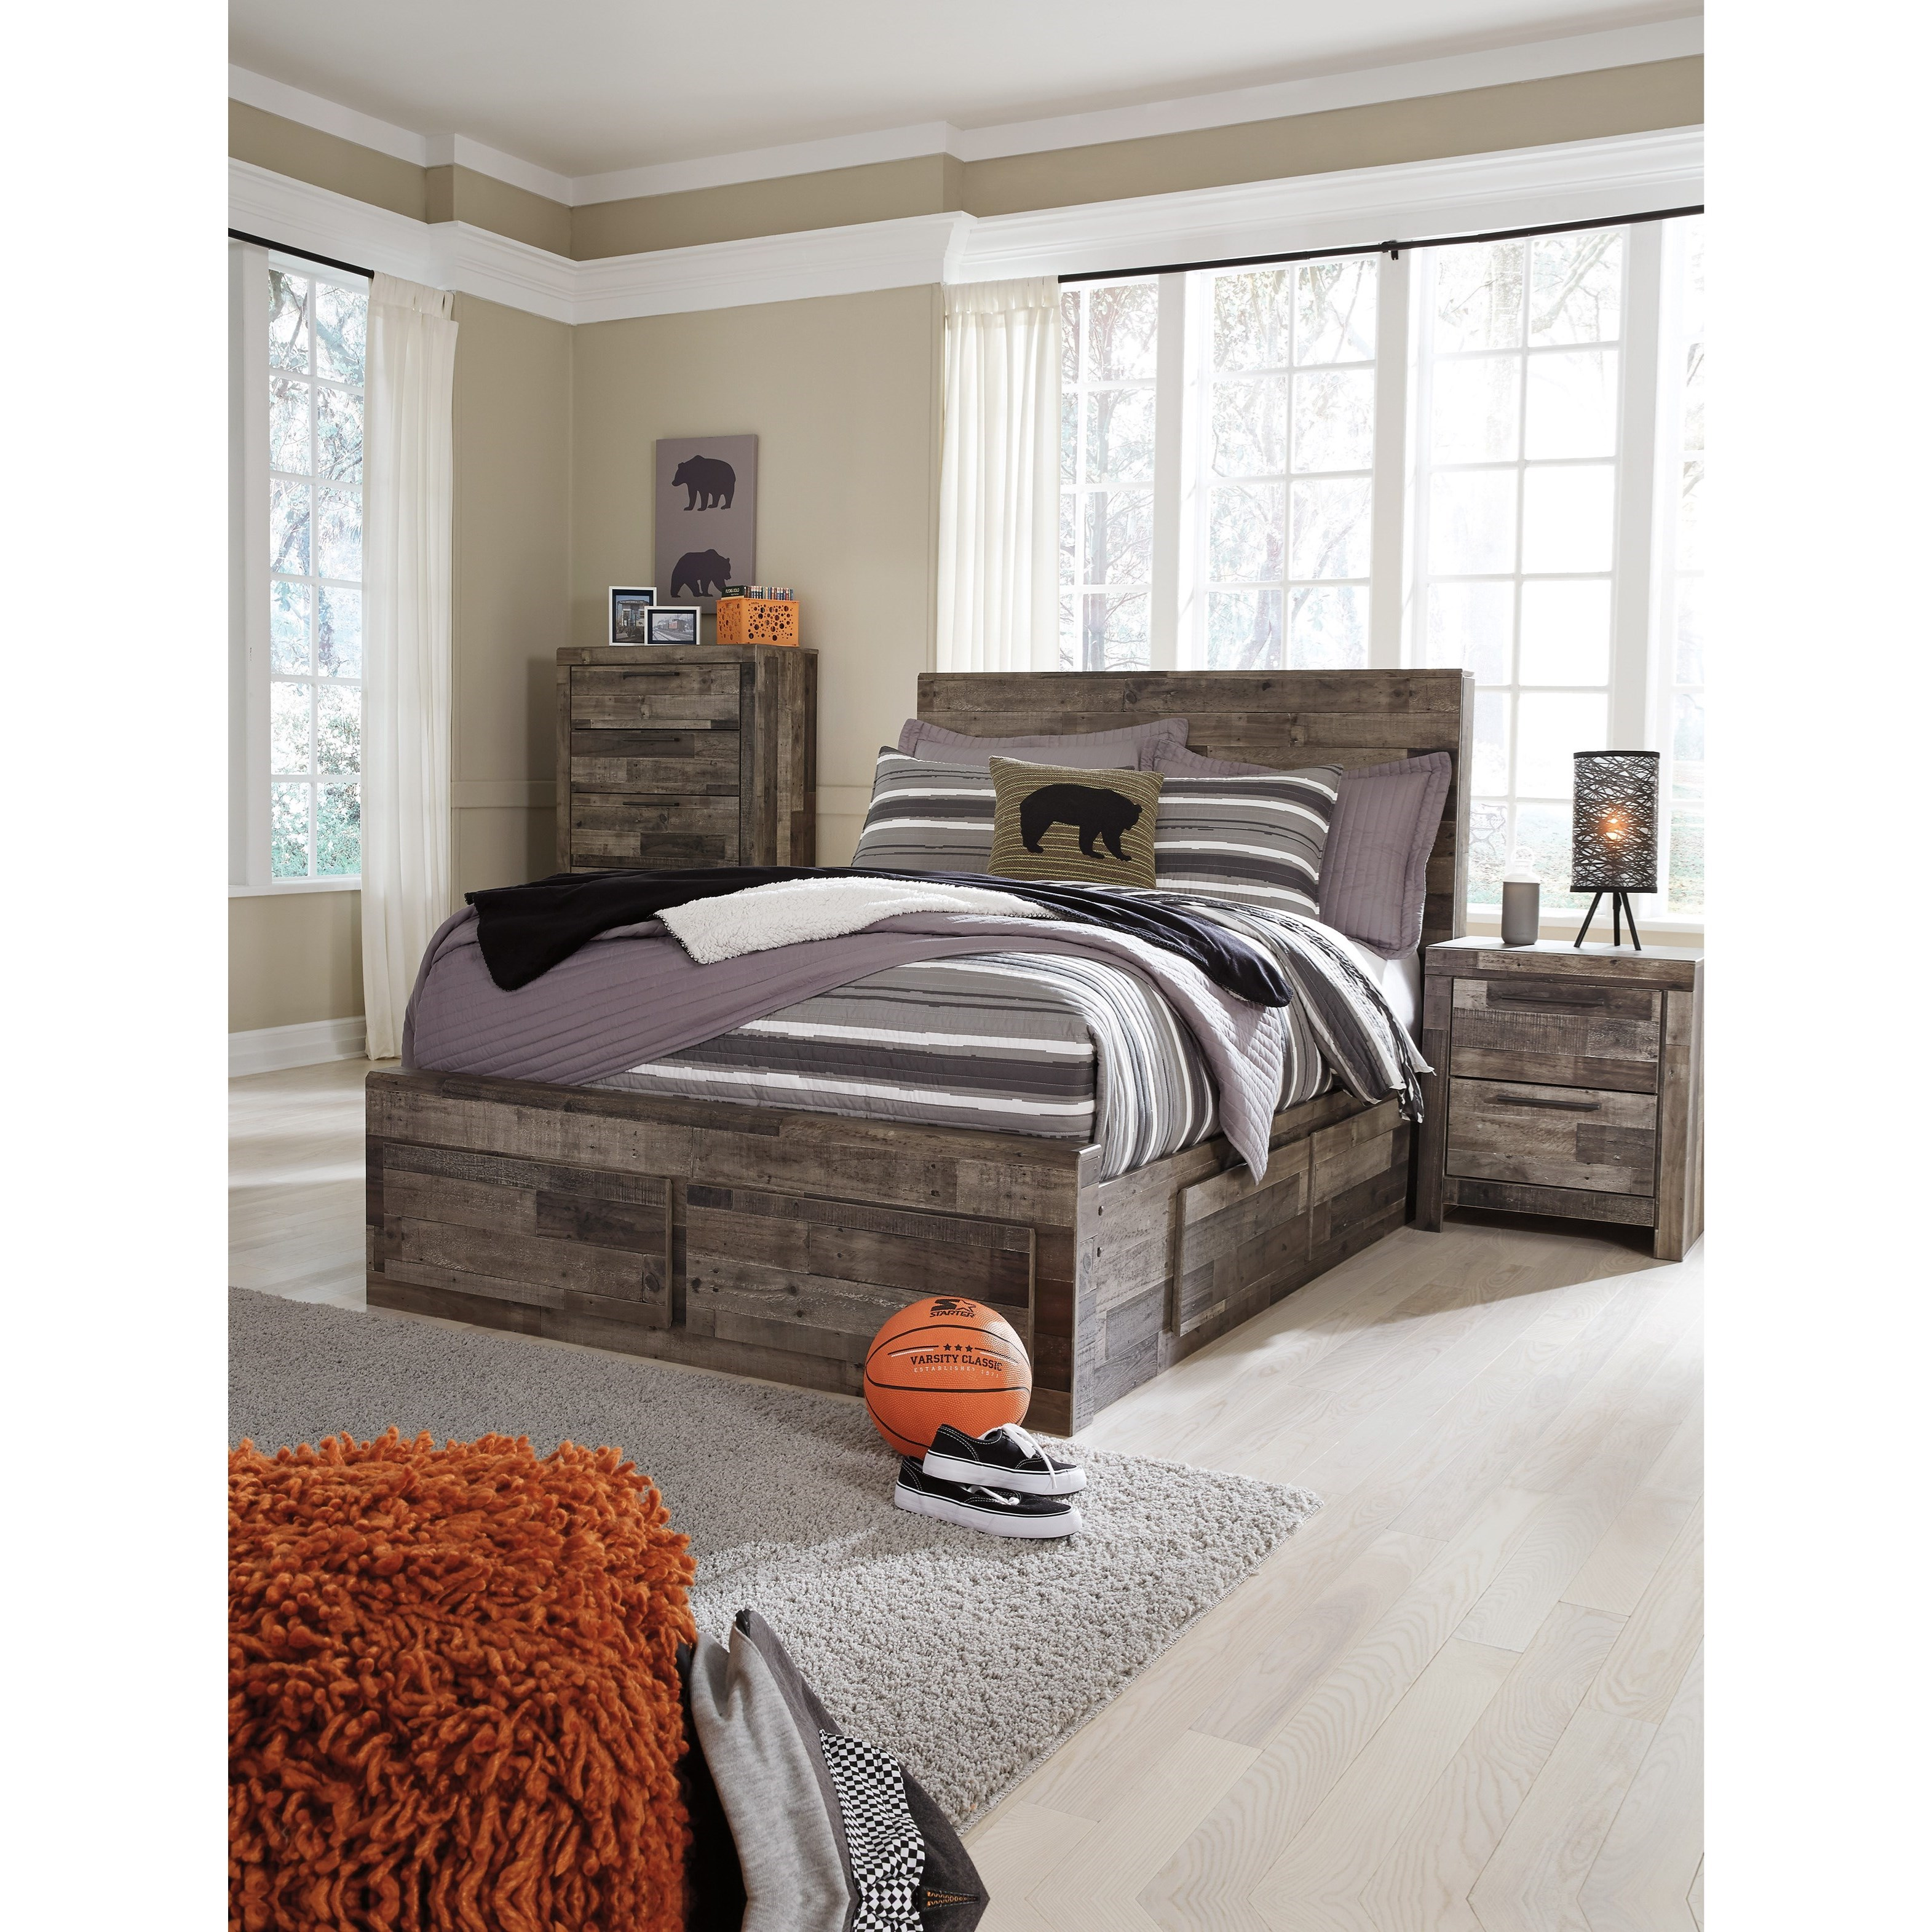 Signature design by ashley derekson rustic modern full - Ashley furniture full bedroom sets ...